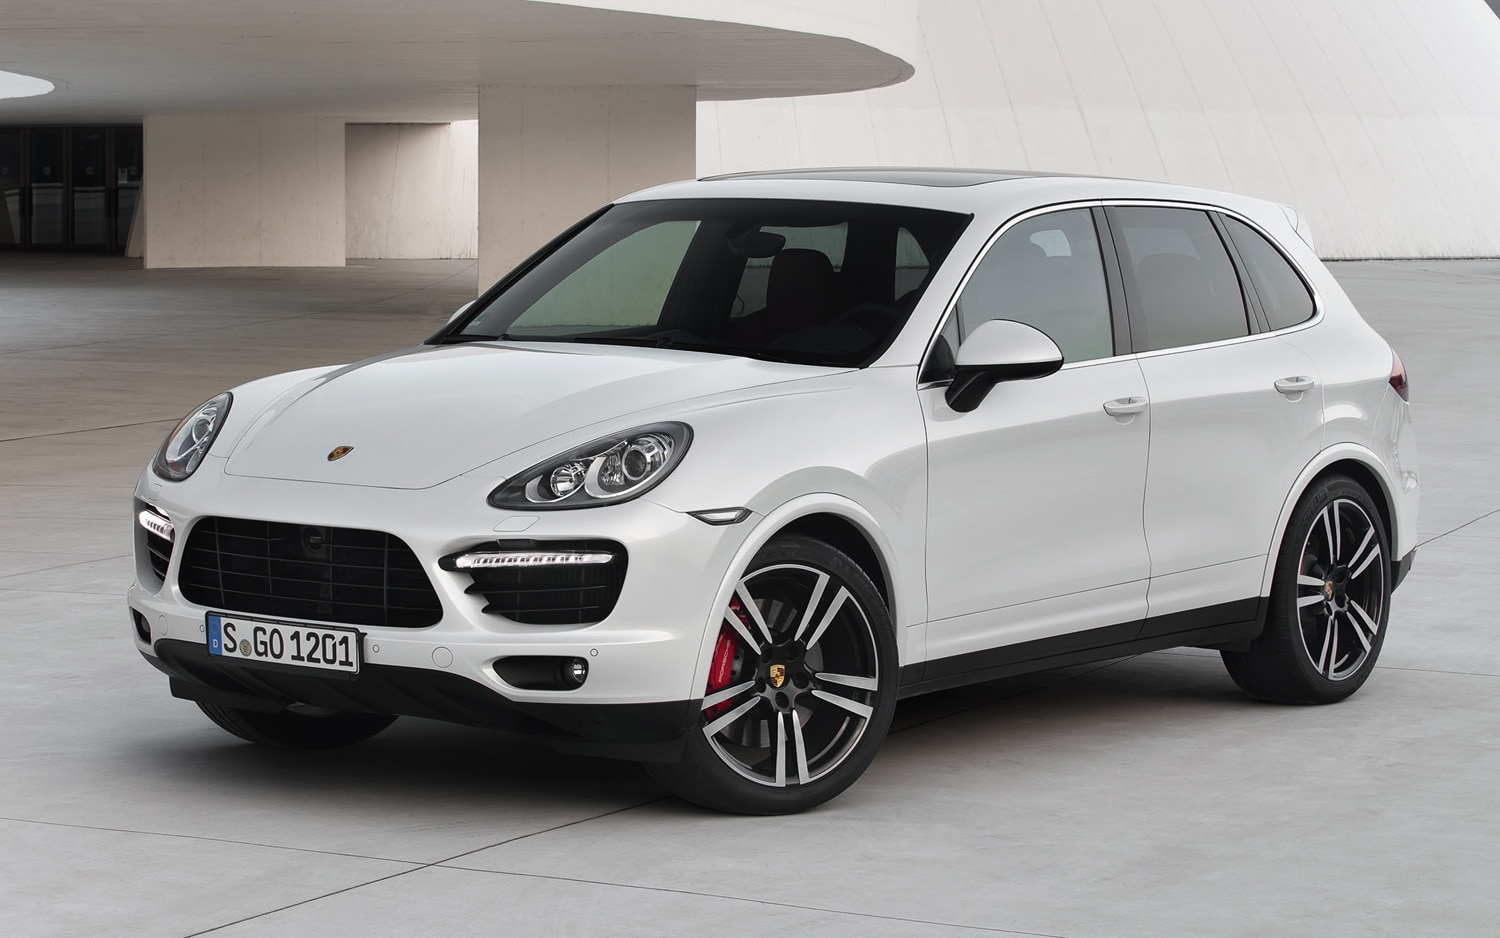 2013 Porsche Cayenne Turbo S Front Three Quarter Static1